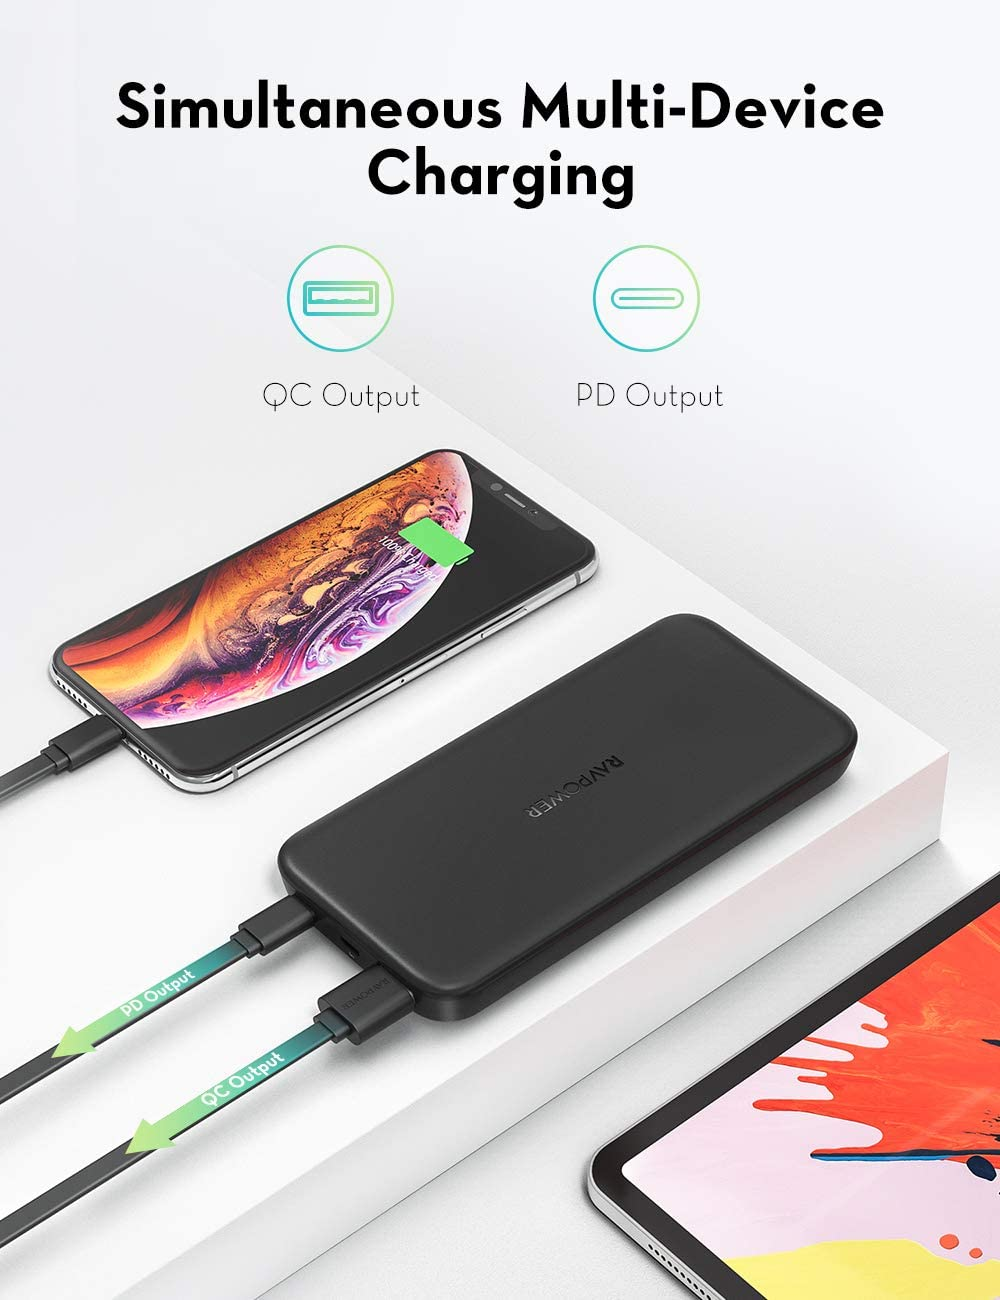 Opinioni miglior prezzo recensione RAVPOWER USB C Power Bank 10000mAh Caricabatterie Portatile con Power Delivery 18W, Quick Charge 3.0 Powerbank 10000 mAh